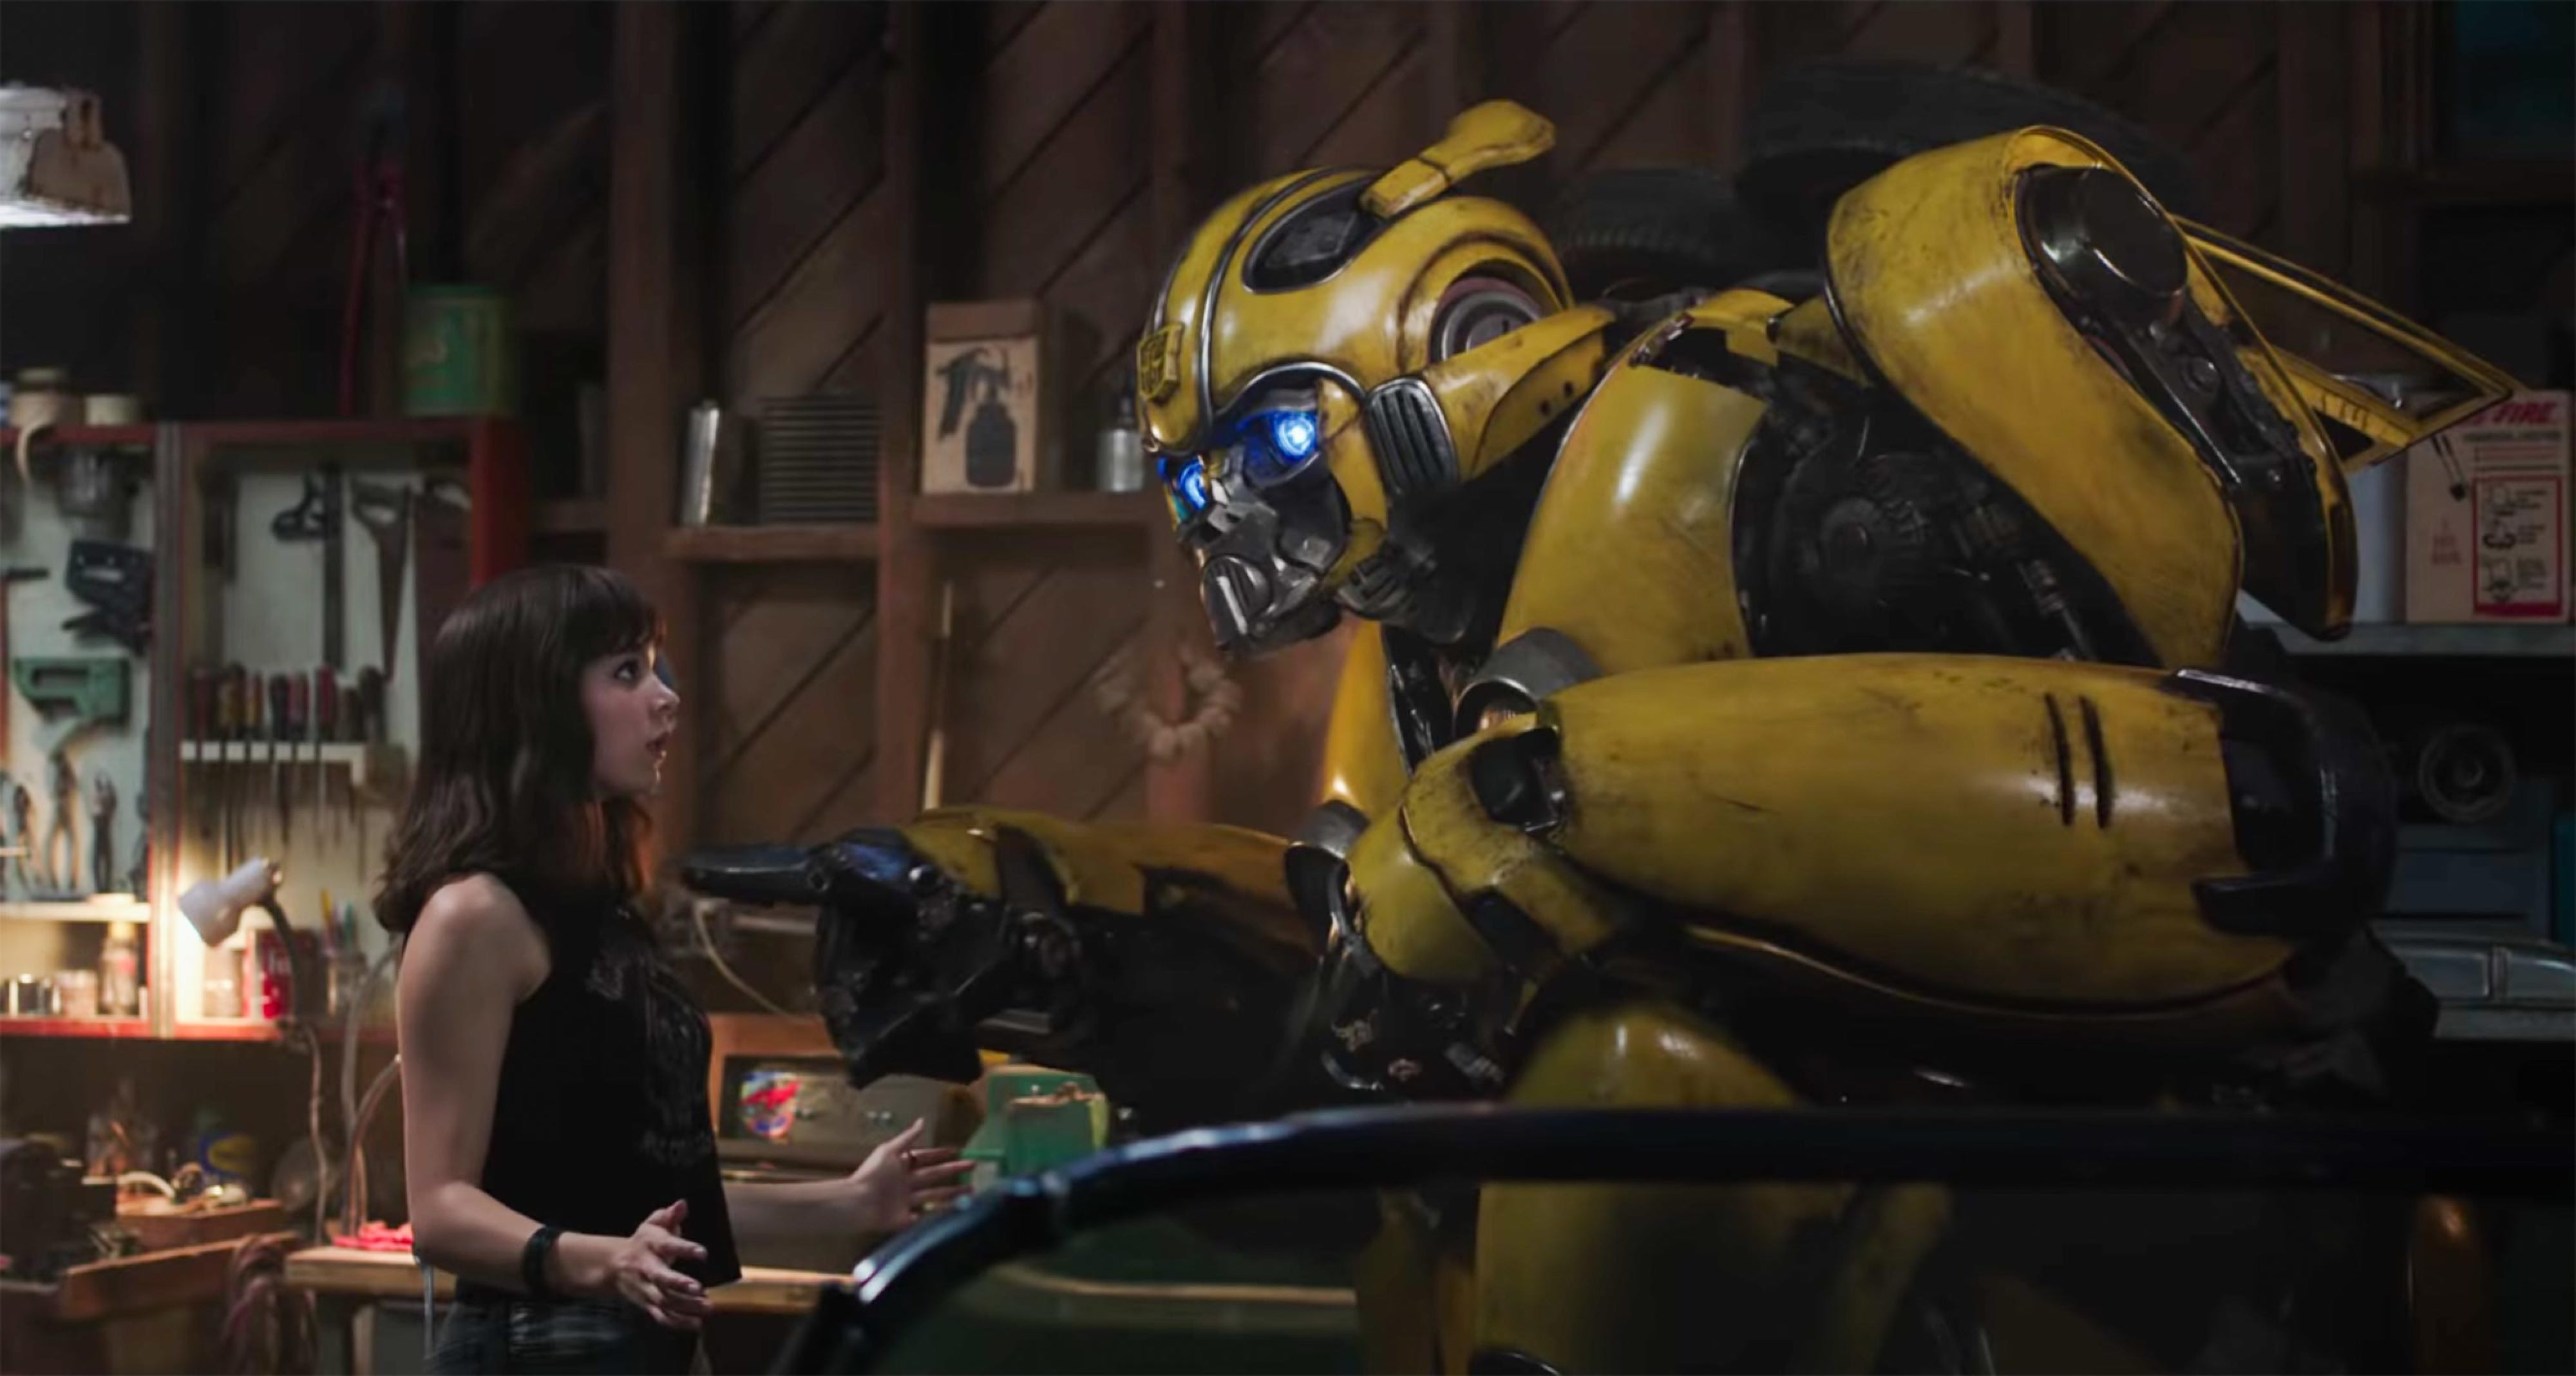 Bumblebee Early Buzz: The Best Transformers Movie Yet /Film